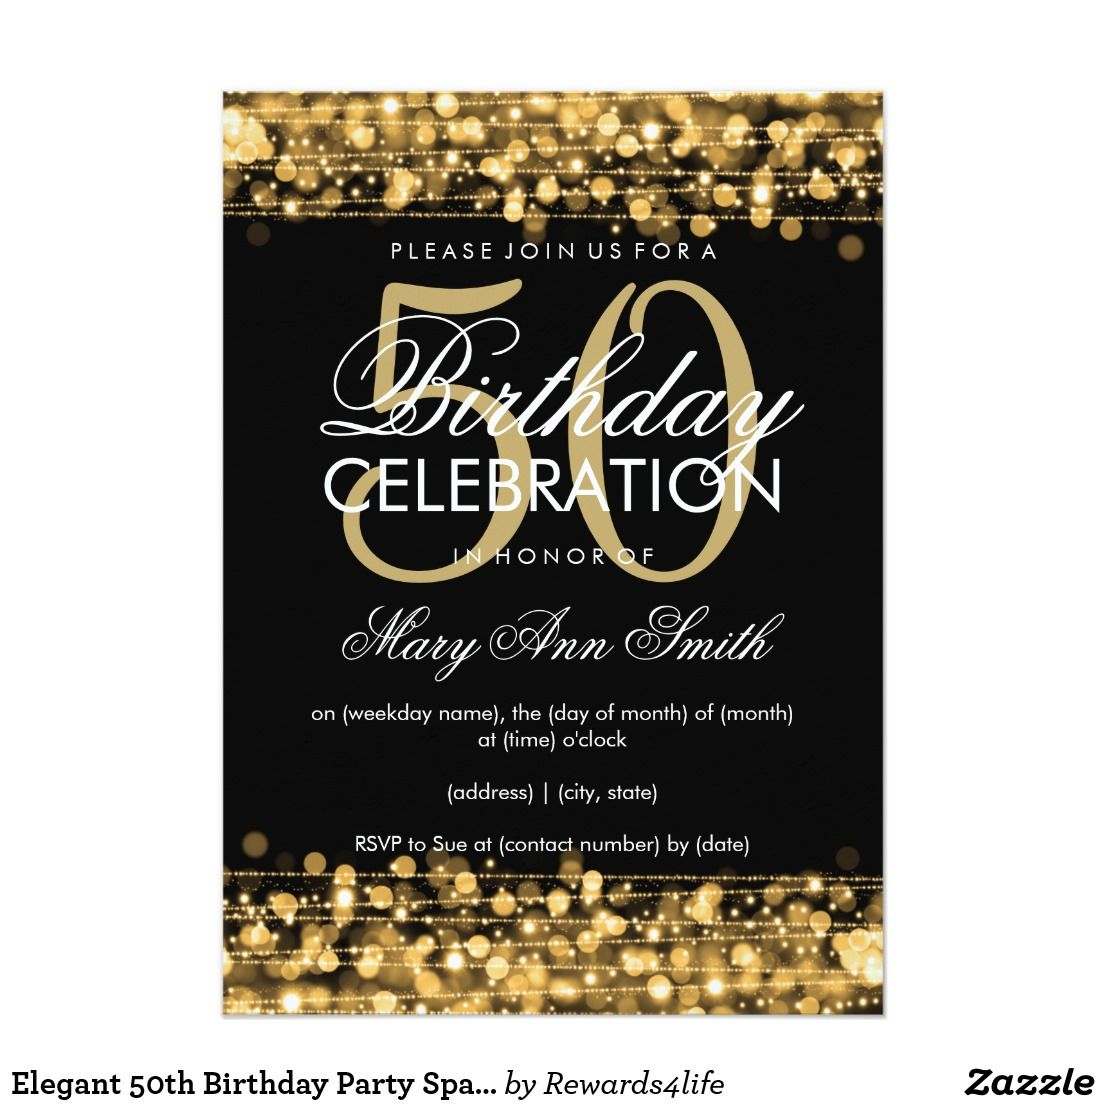 Create your own Invitation 50th birthday